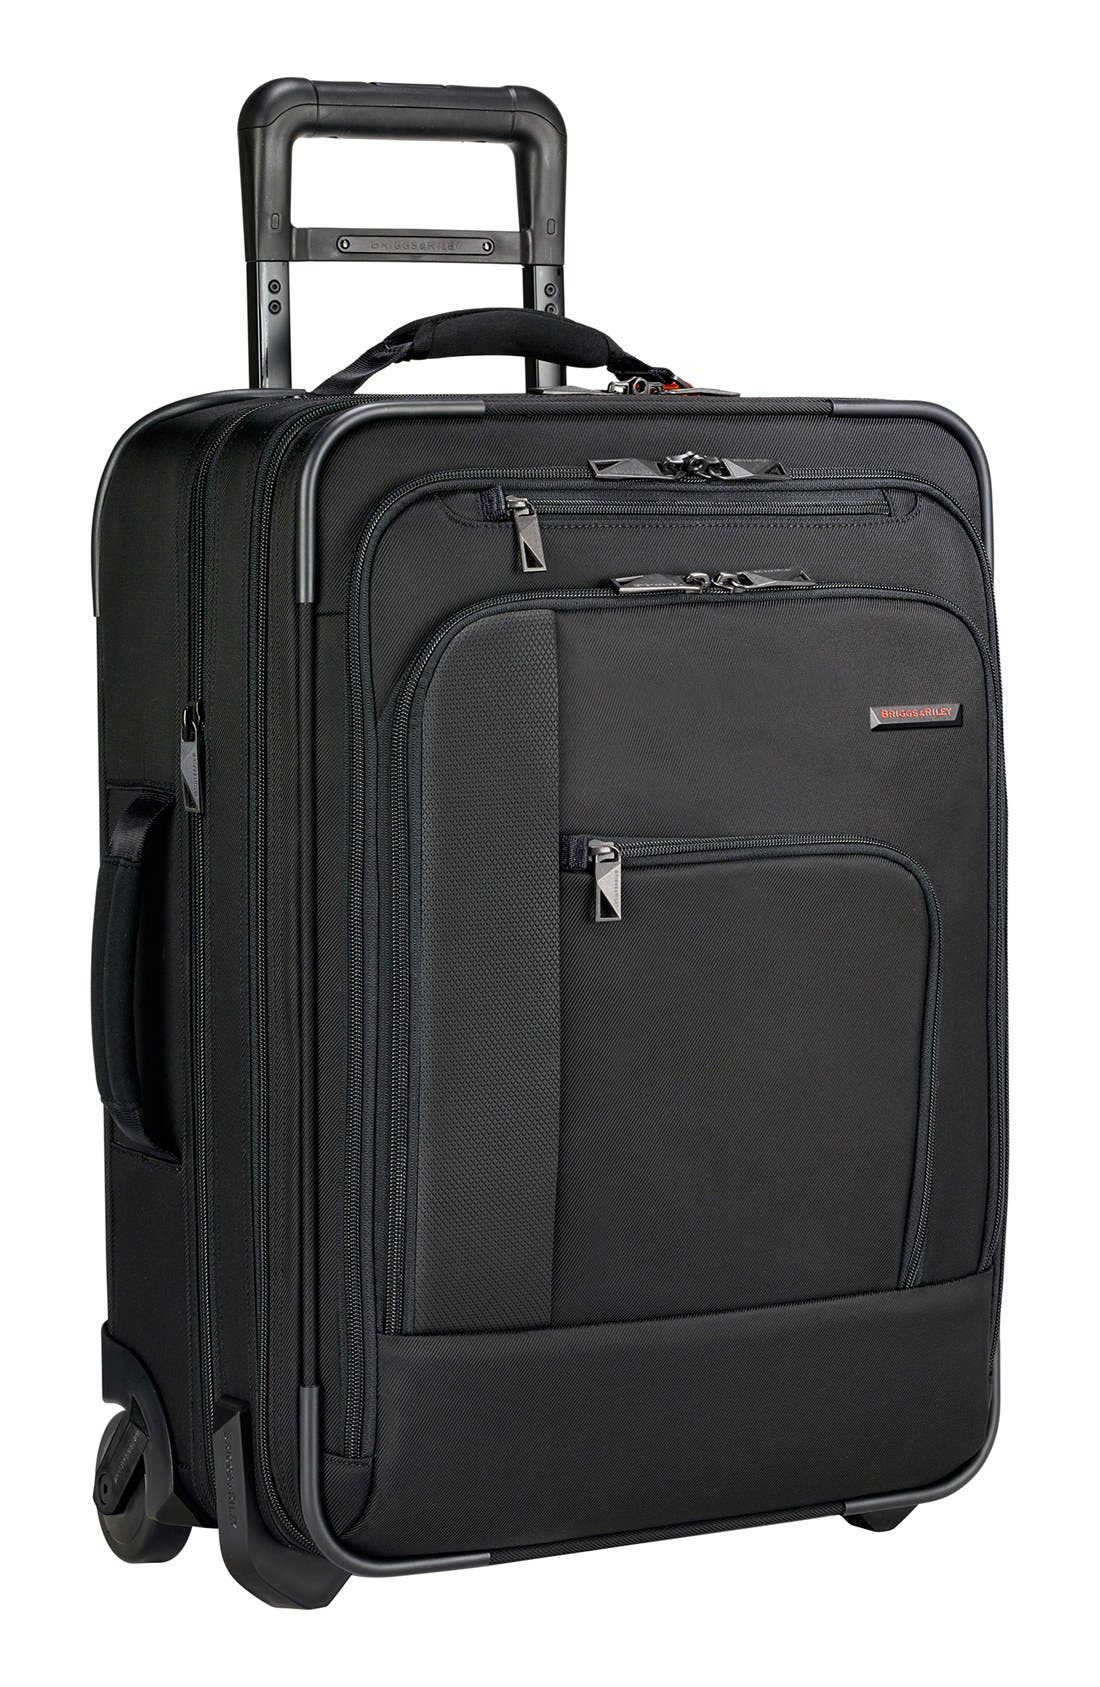 BRIGGS & RILEY Verb - Pilot Rolling Carry-On